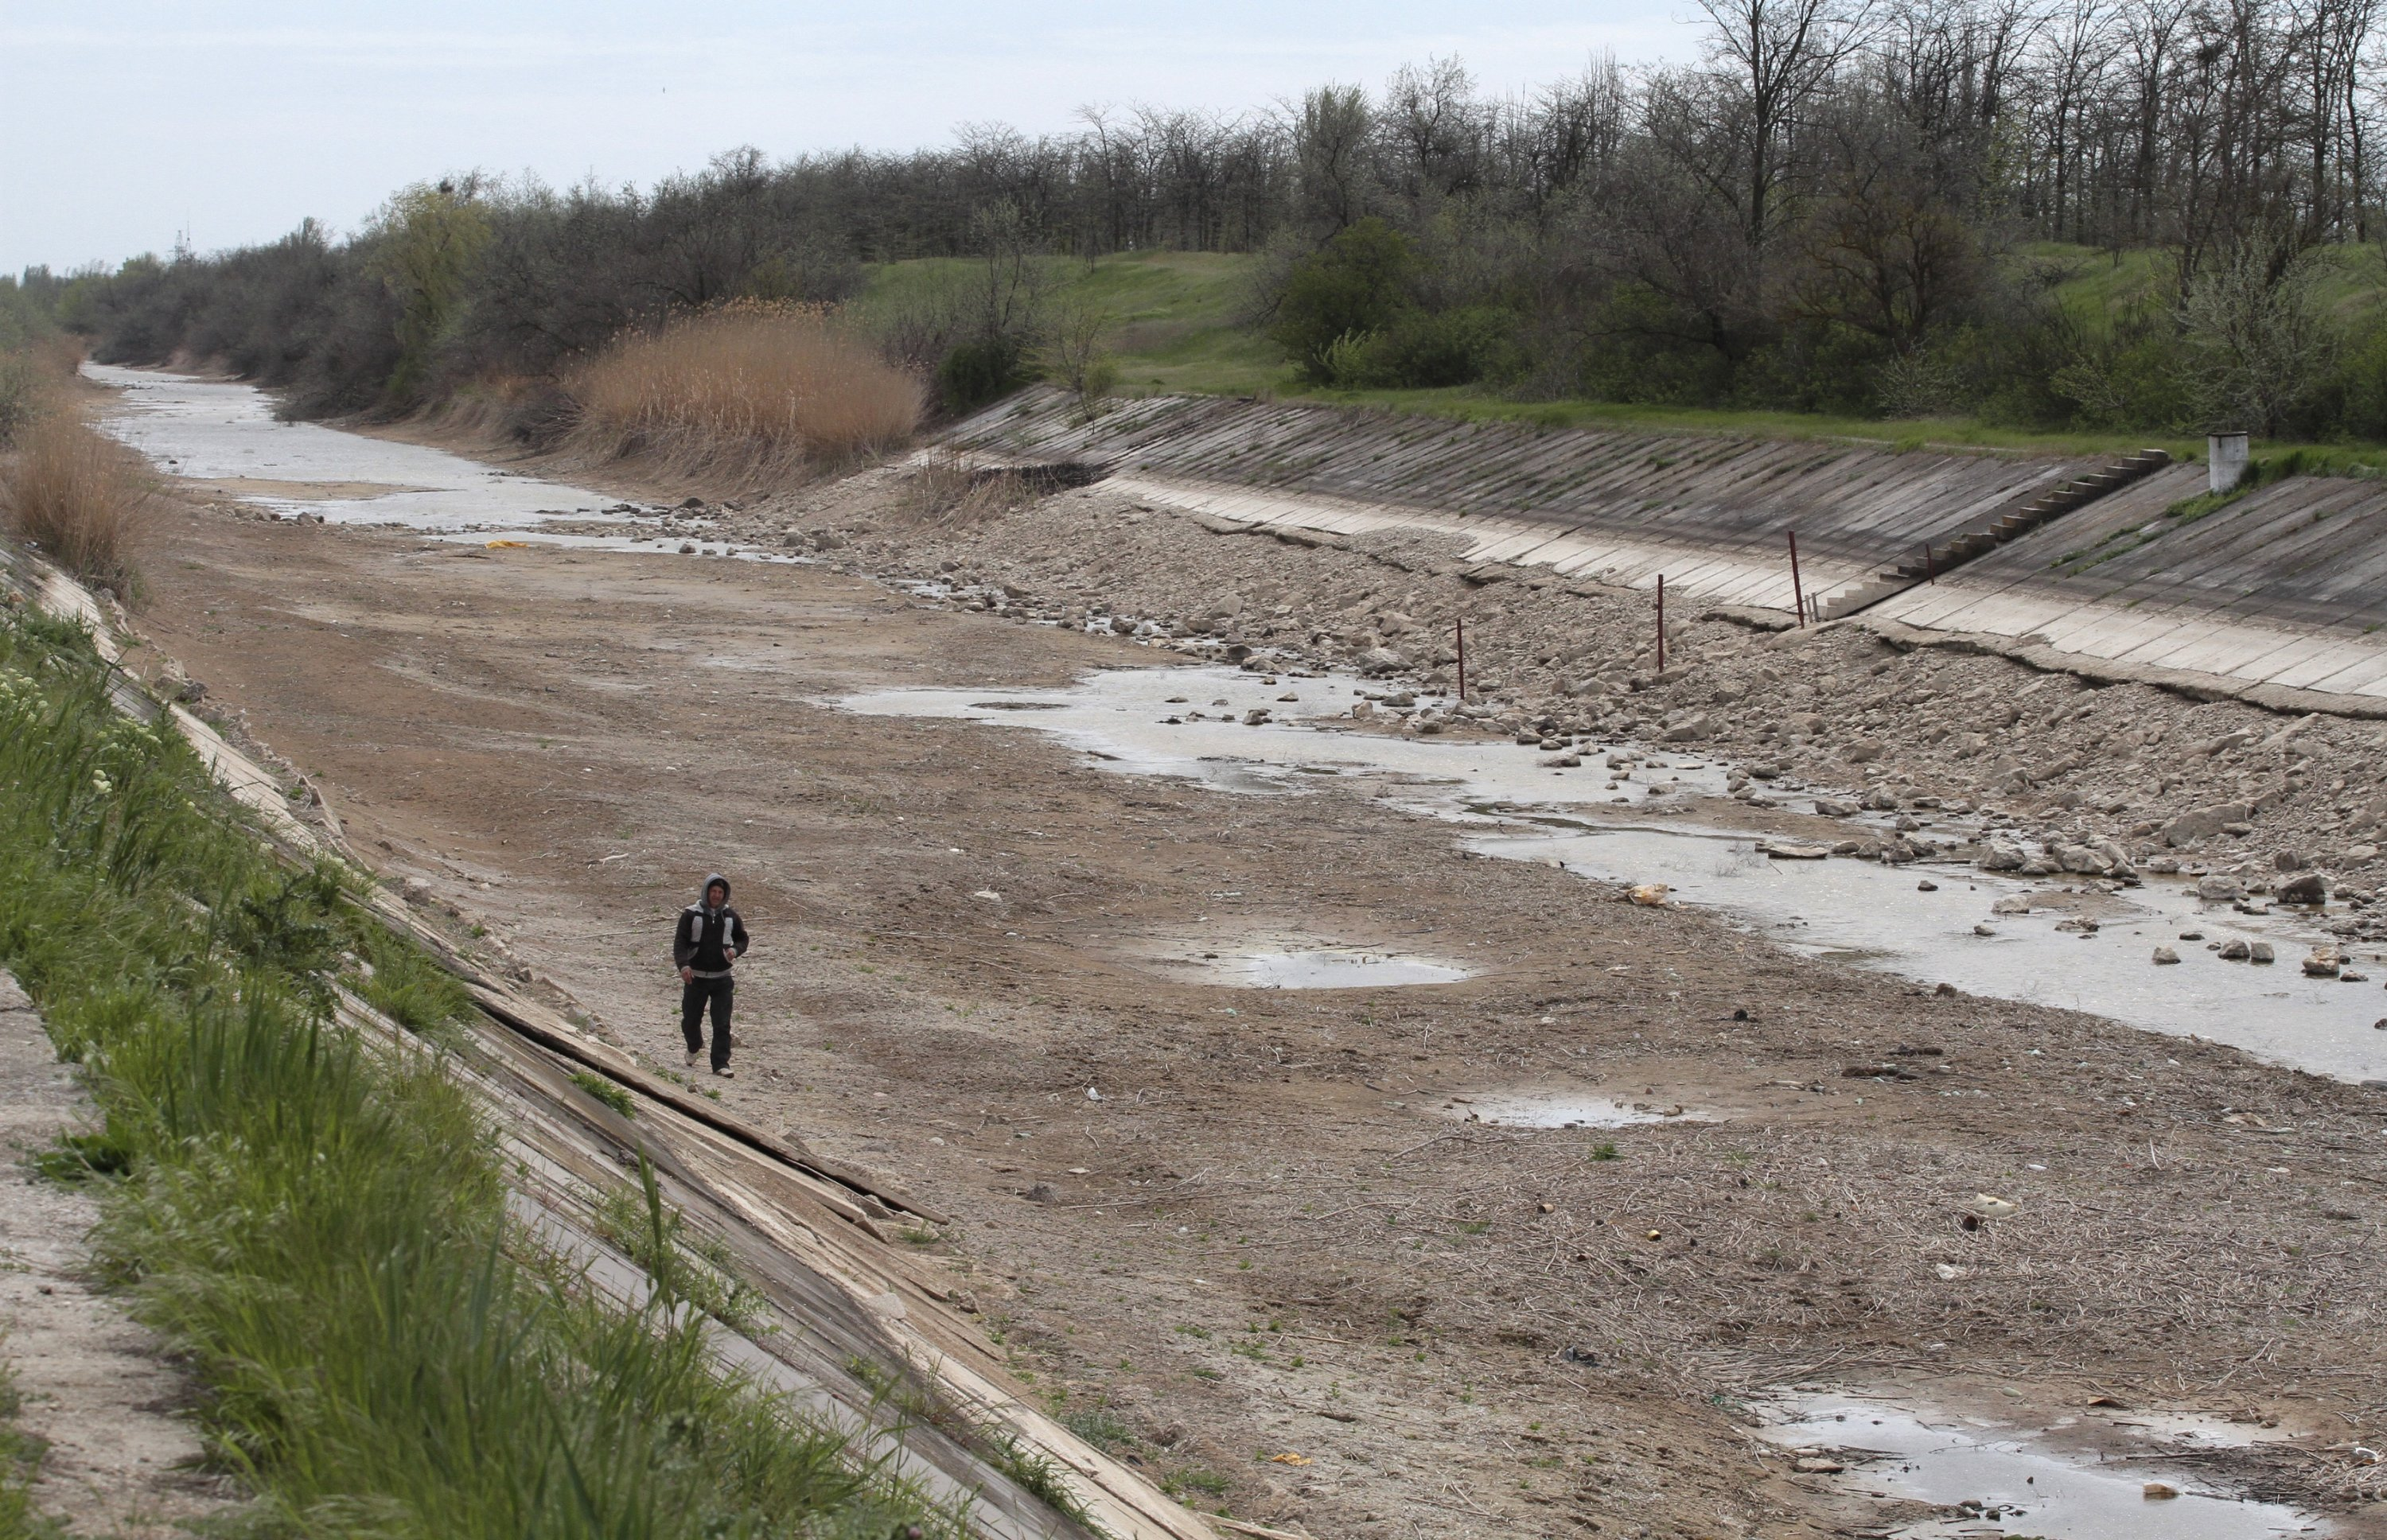 A view shows a section of the North Crimean Canal outside the settlement of Tabachnoye near Dzhankoi in Crimea, April 25, 2014. (Reuters File Photo)